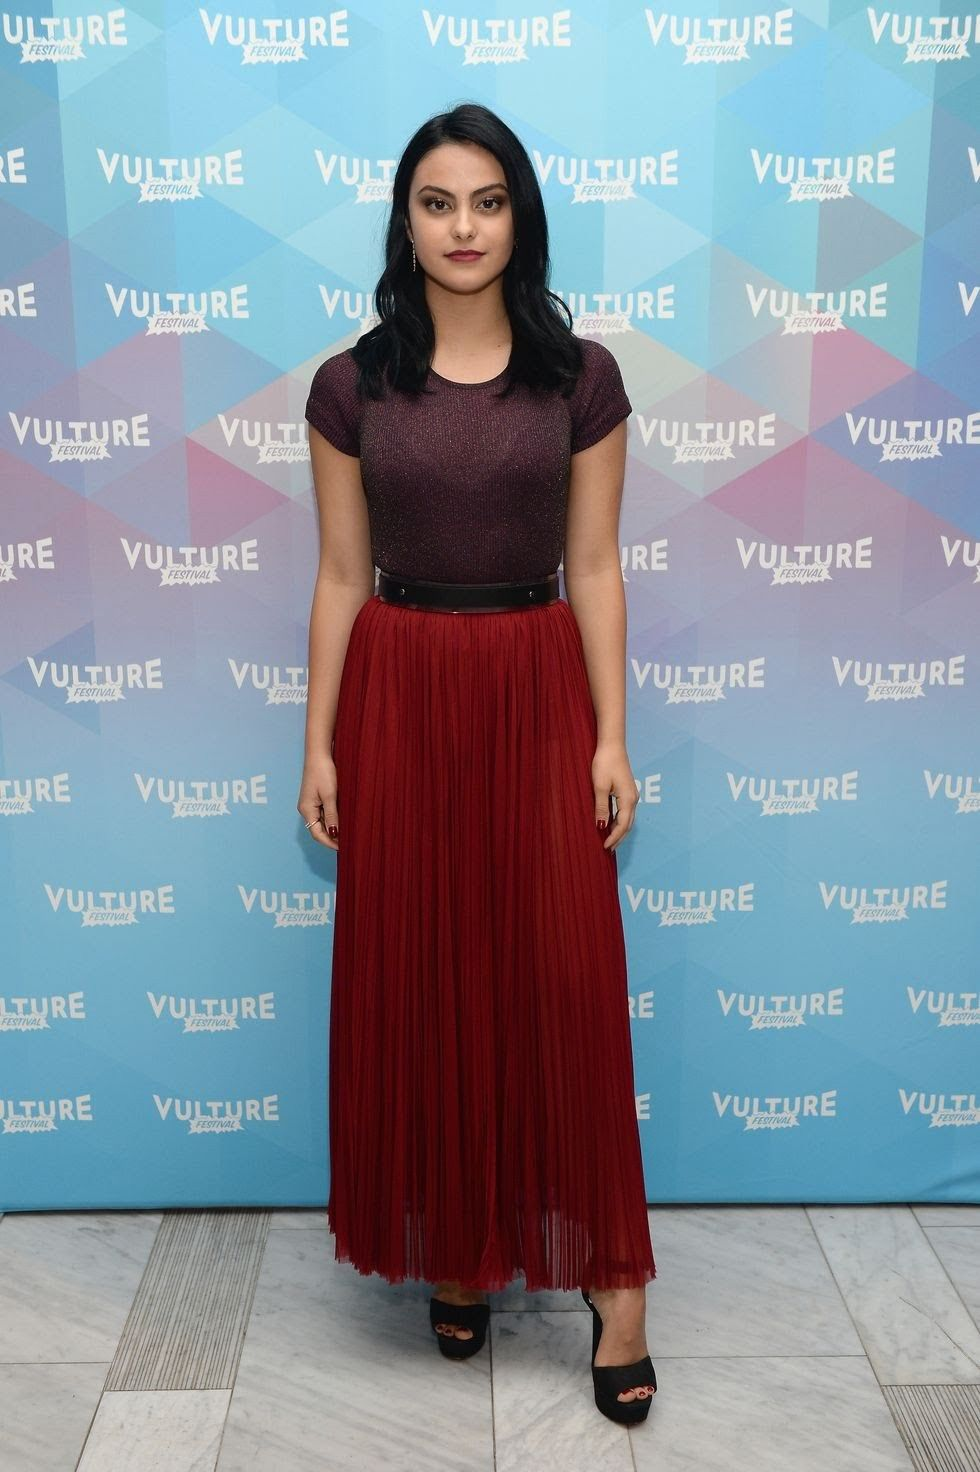 10 Ide Outfits ala Camila Mendes, Si Manis 'Veronica Lodge' Riverdale